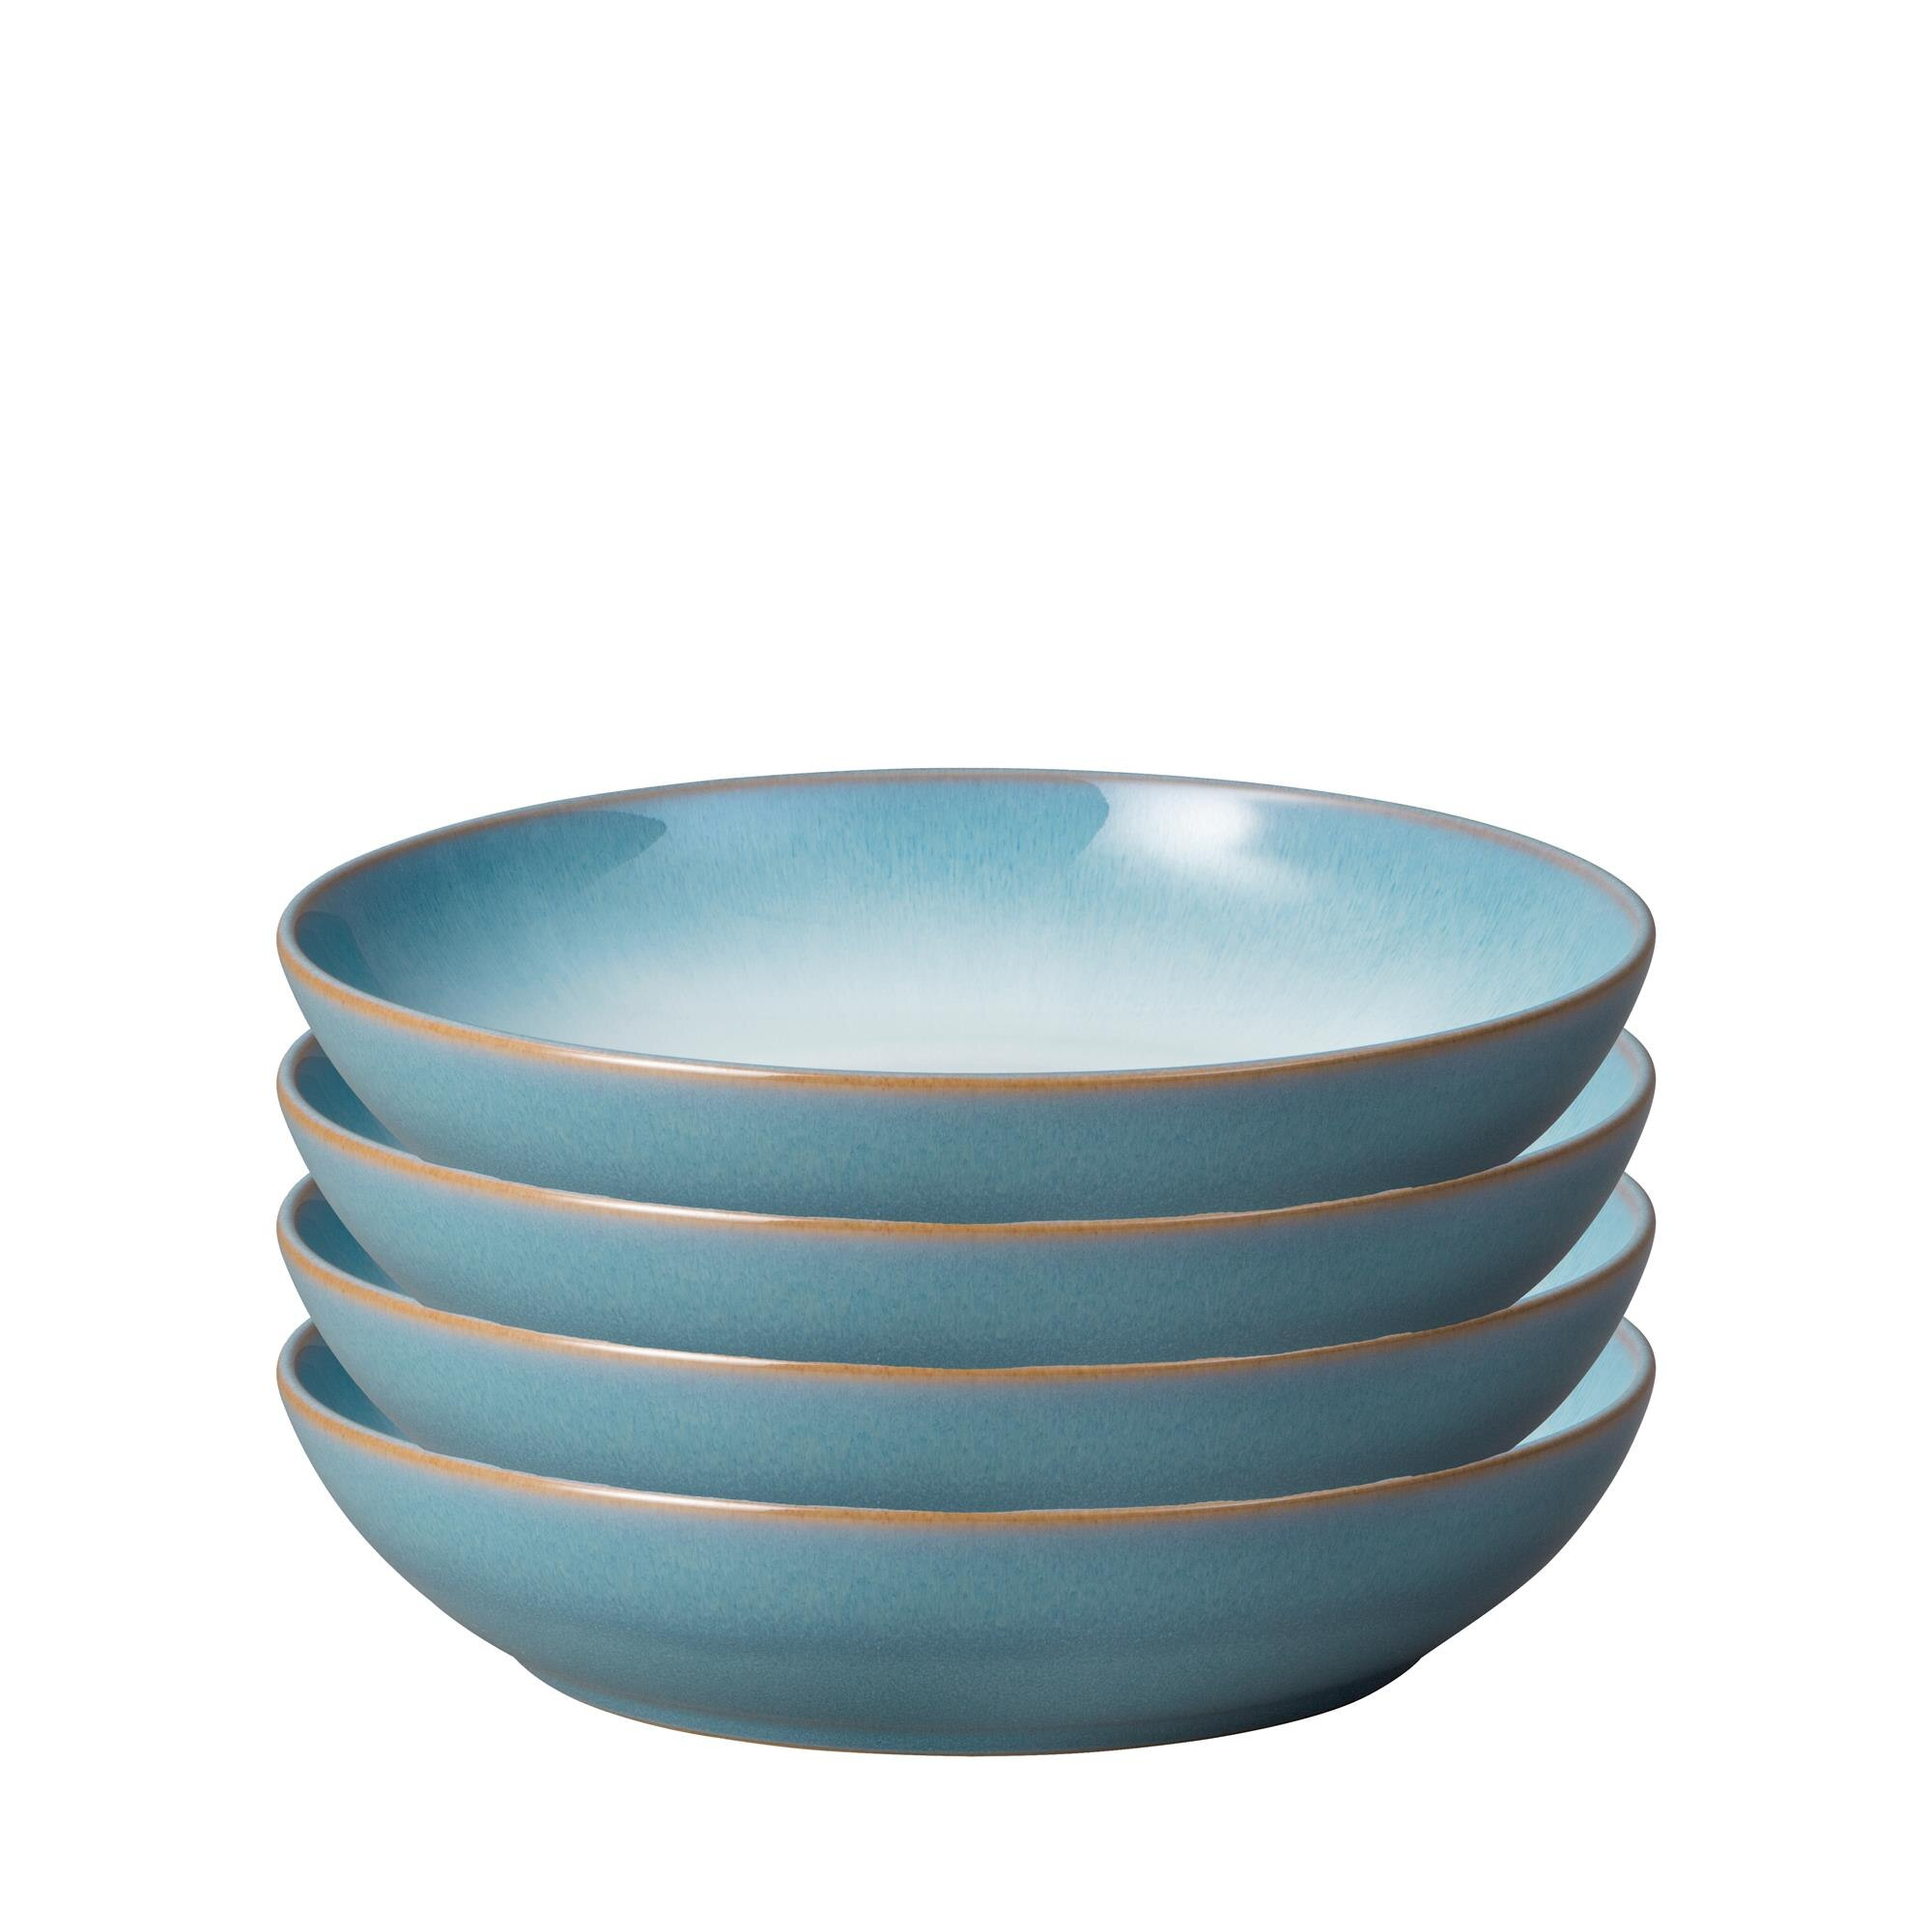 Compare prices for Azure Haze Set of 4 Coupe Pasta Bowls